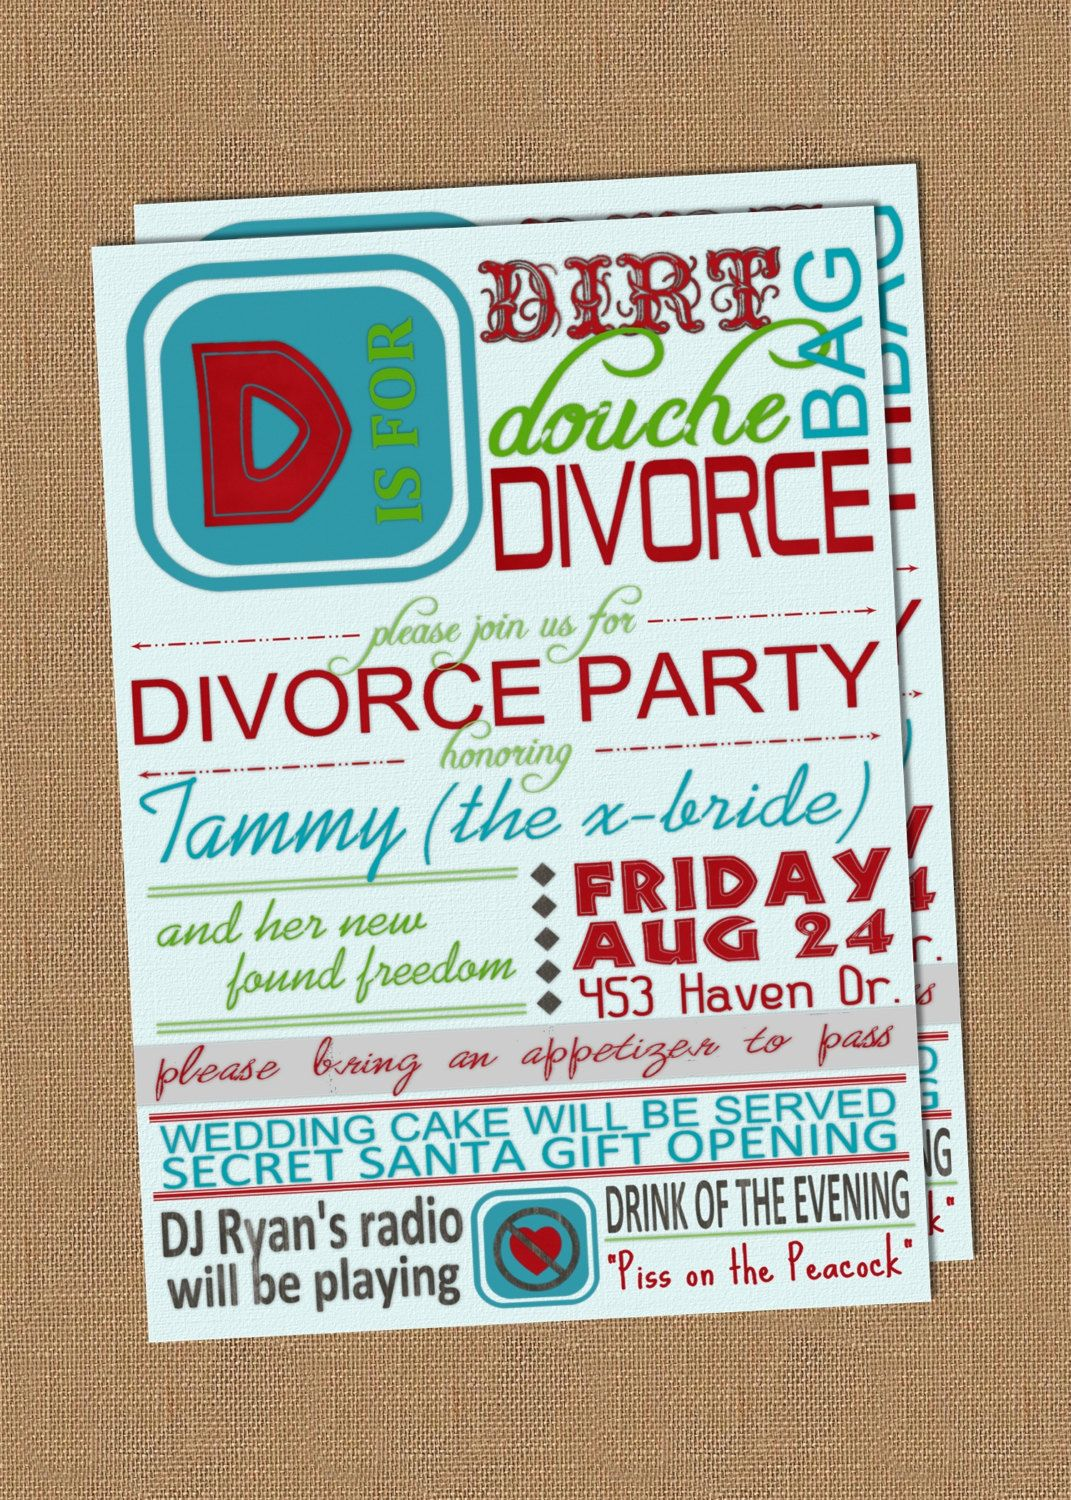 Divorce Party Invitation #trashthedress | Divorce Party ...